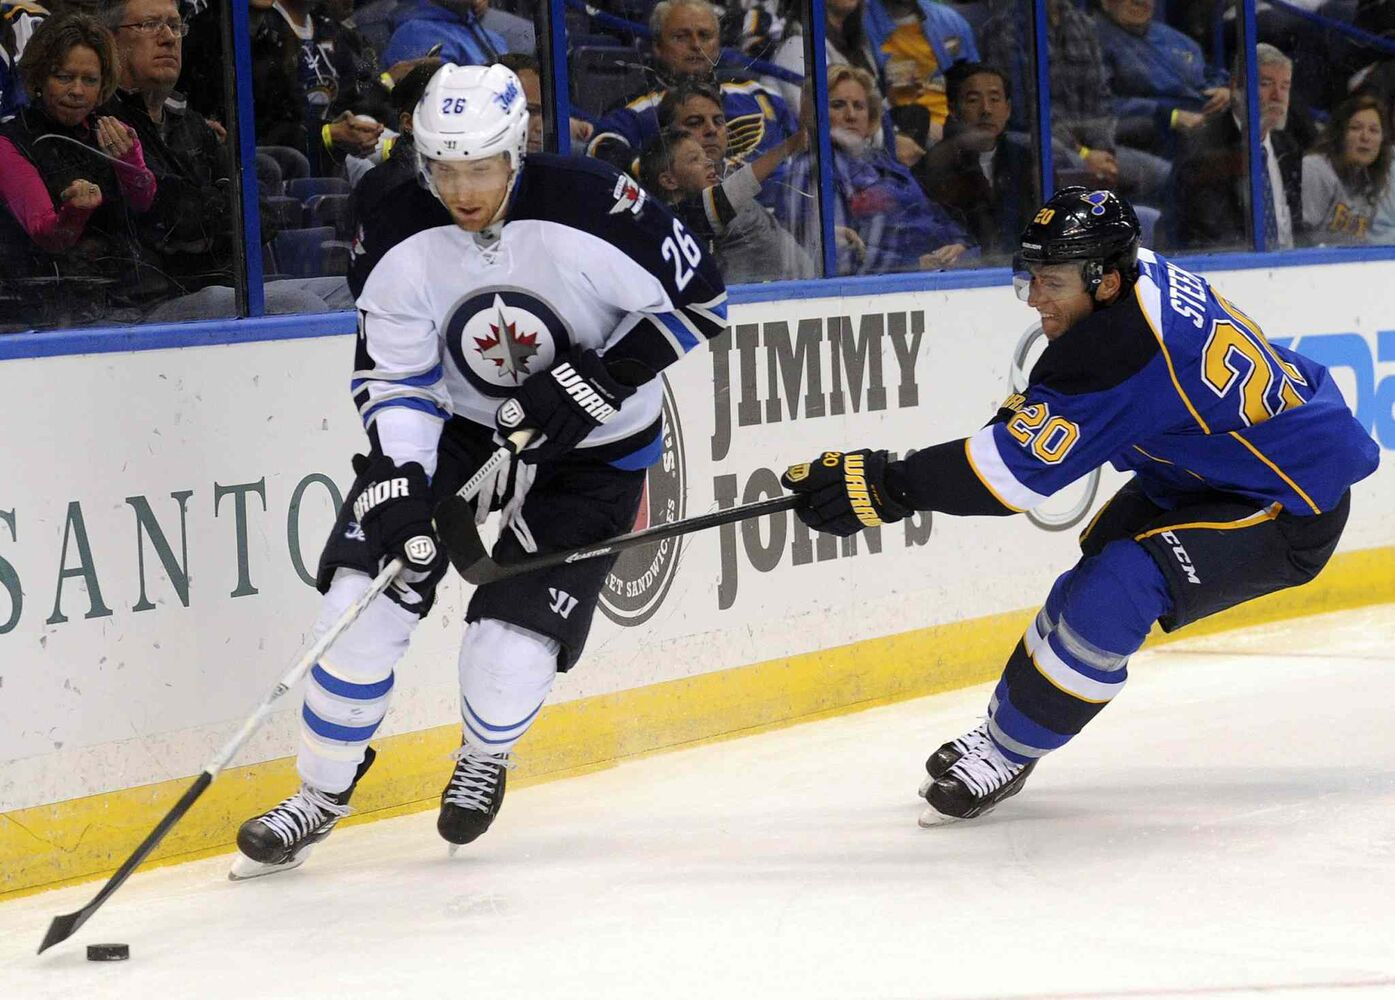 Winnipeg Jets' Blake Wheeler skates by St. Louis Blues' Alexander Steen (20) during the first period. (CP)